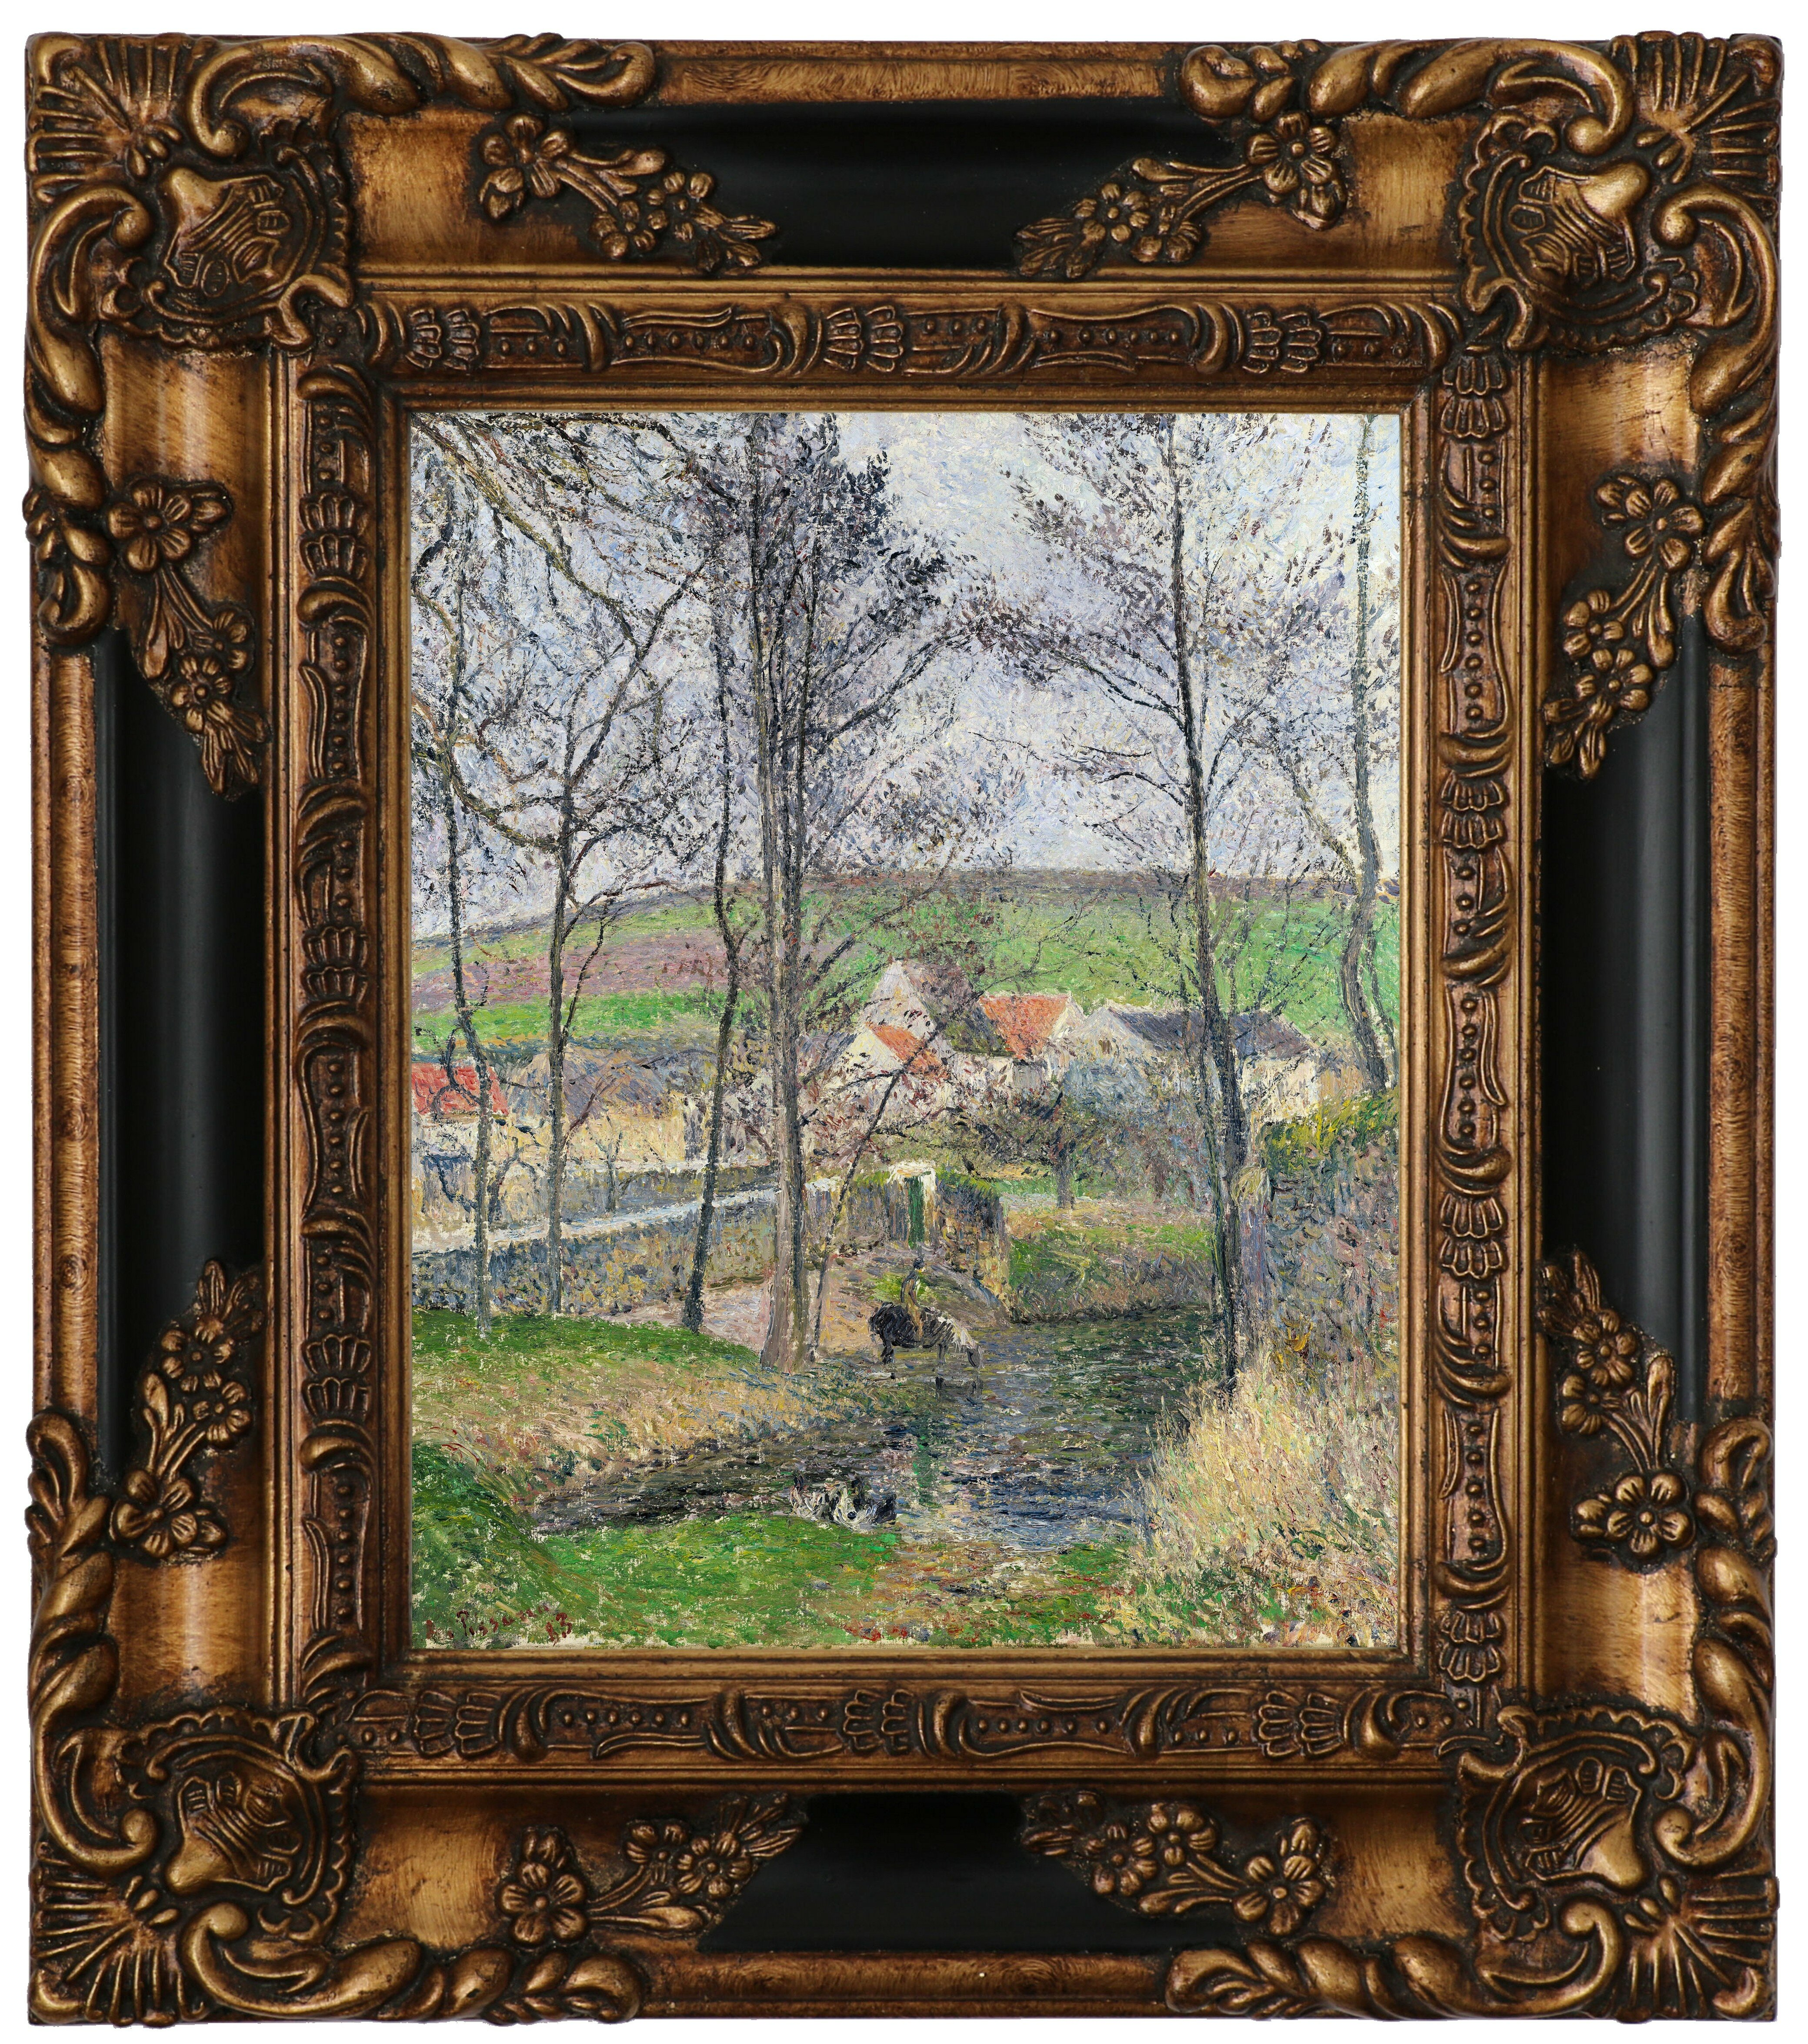 Vault W Artwork The Banks Of The Viosne At Osny In Gray Weather Winter 1883 By Camille Pissarro Framed Graphic Art Print On Canvas Wayfair